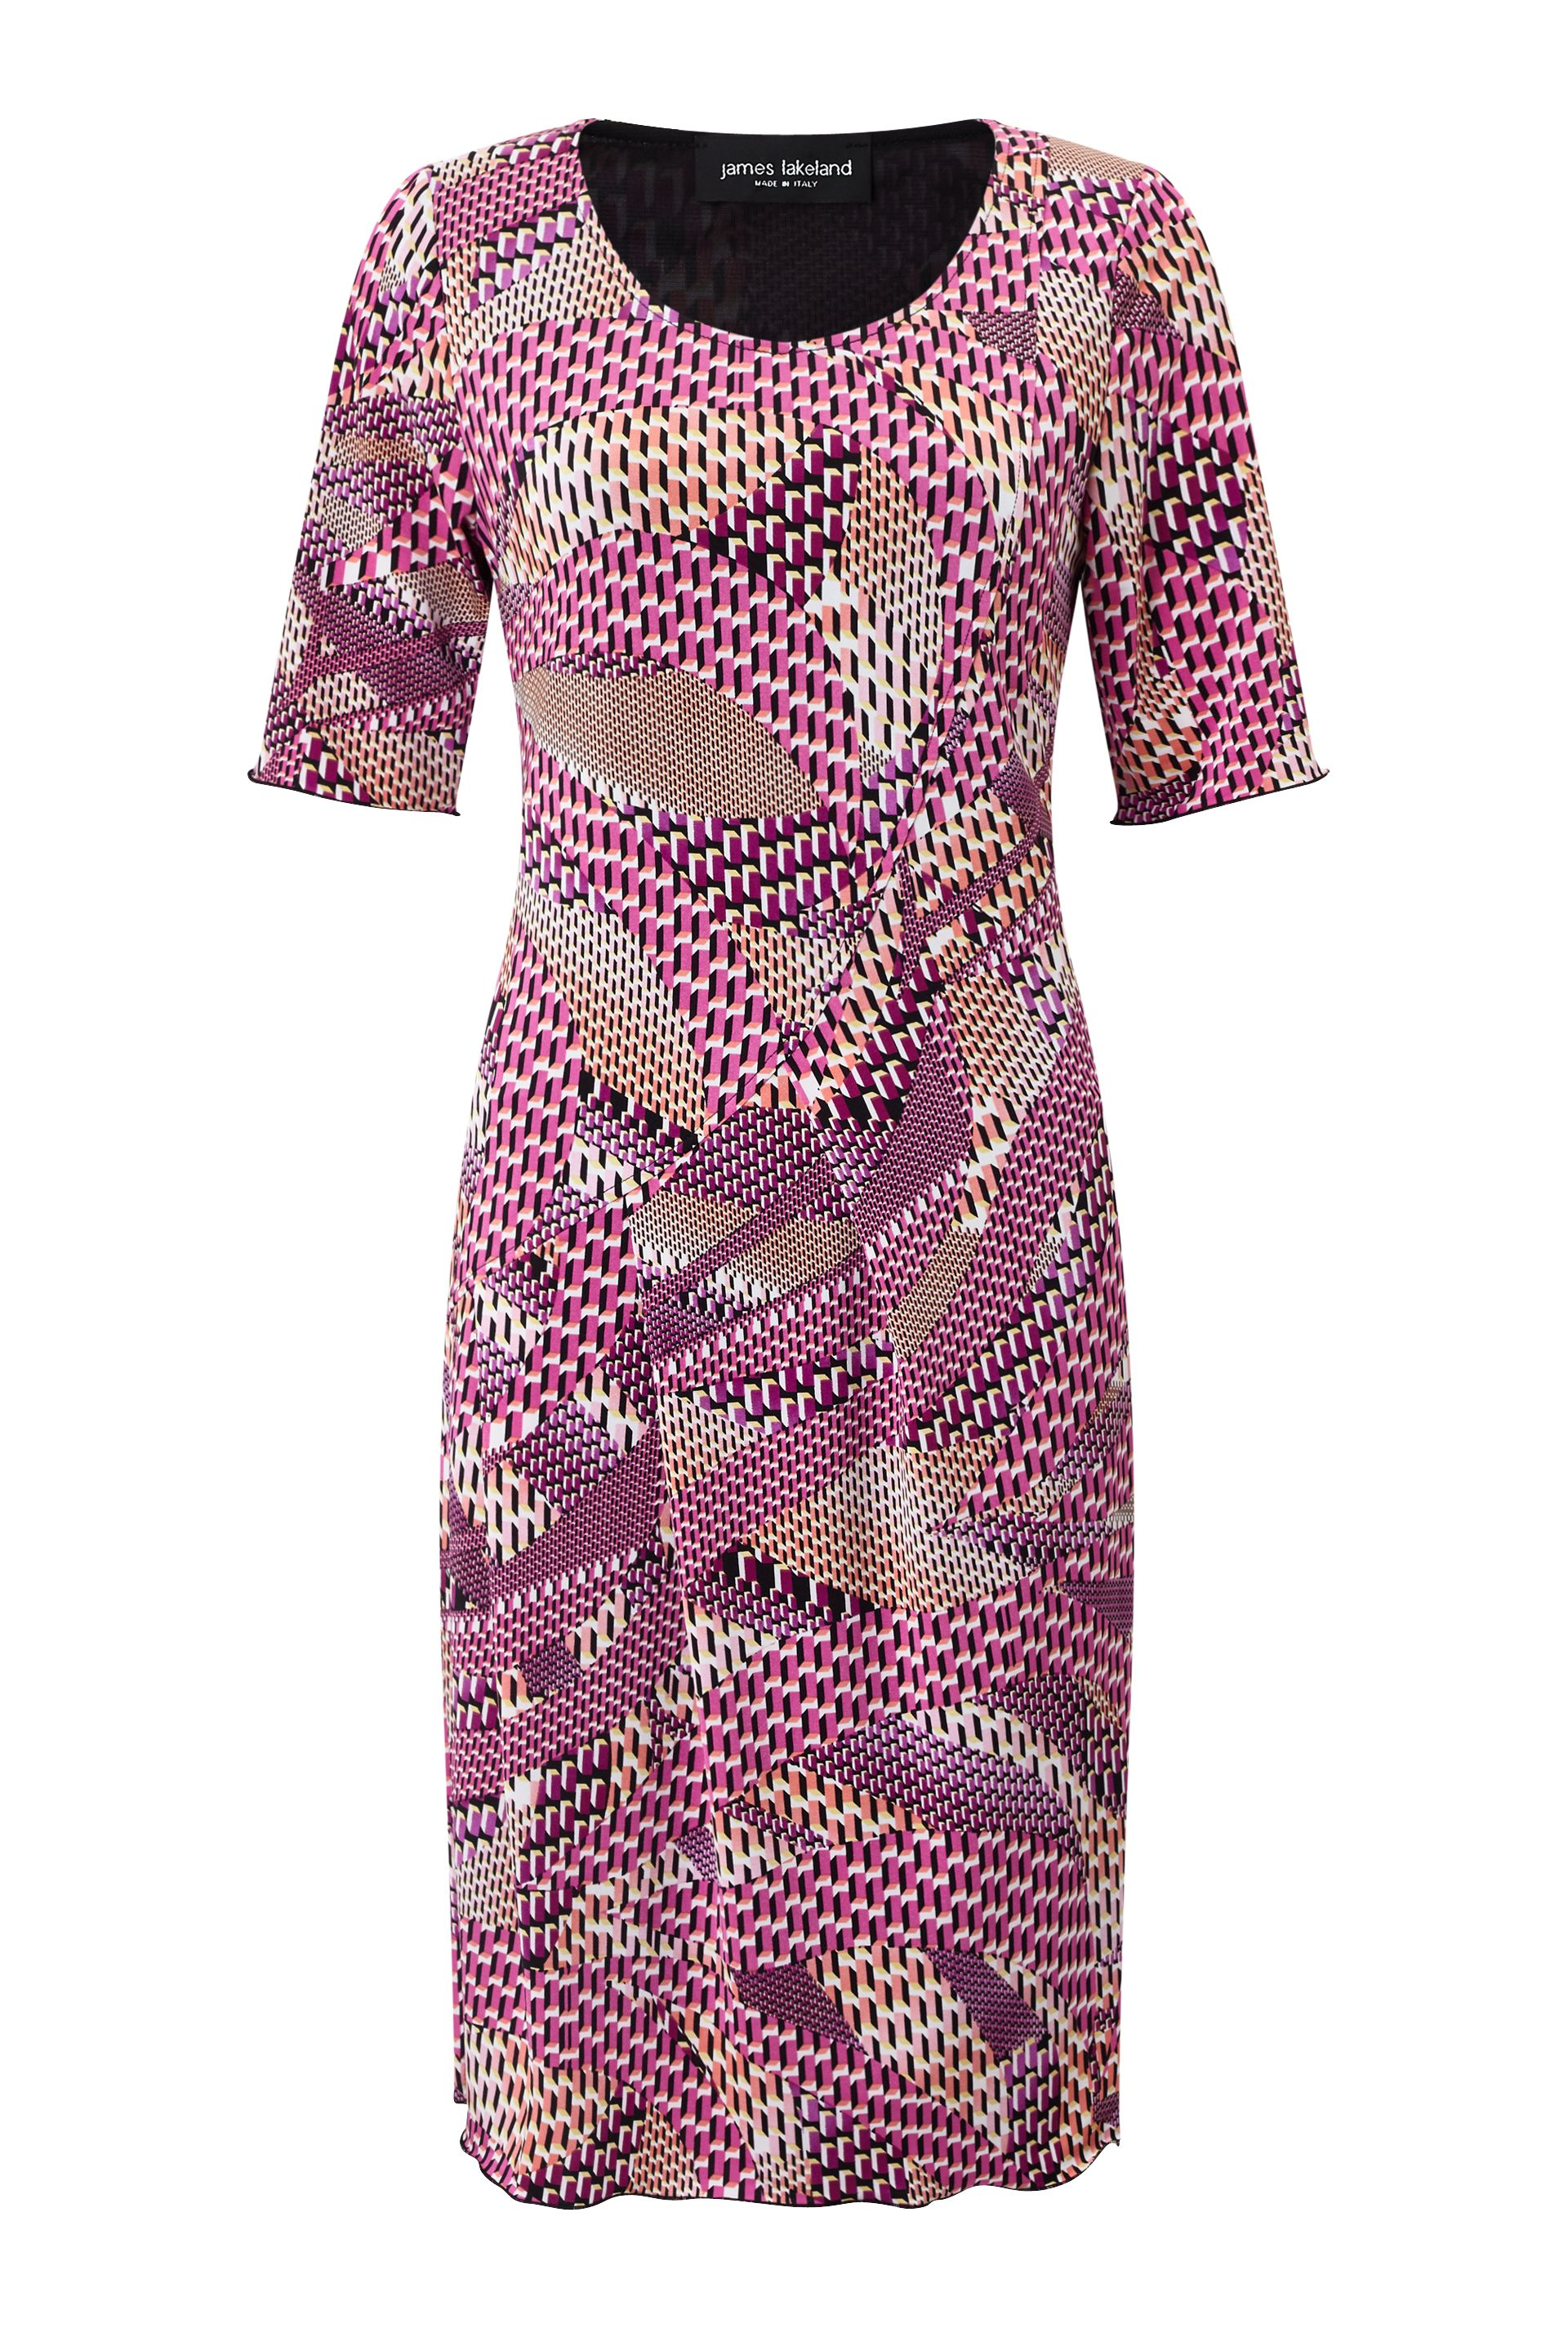 James Lakeland Printed Cut Pleat Dress, Pink